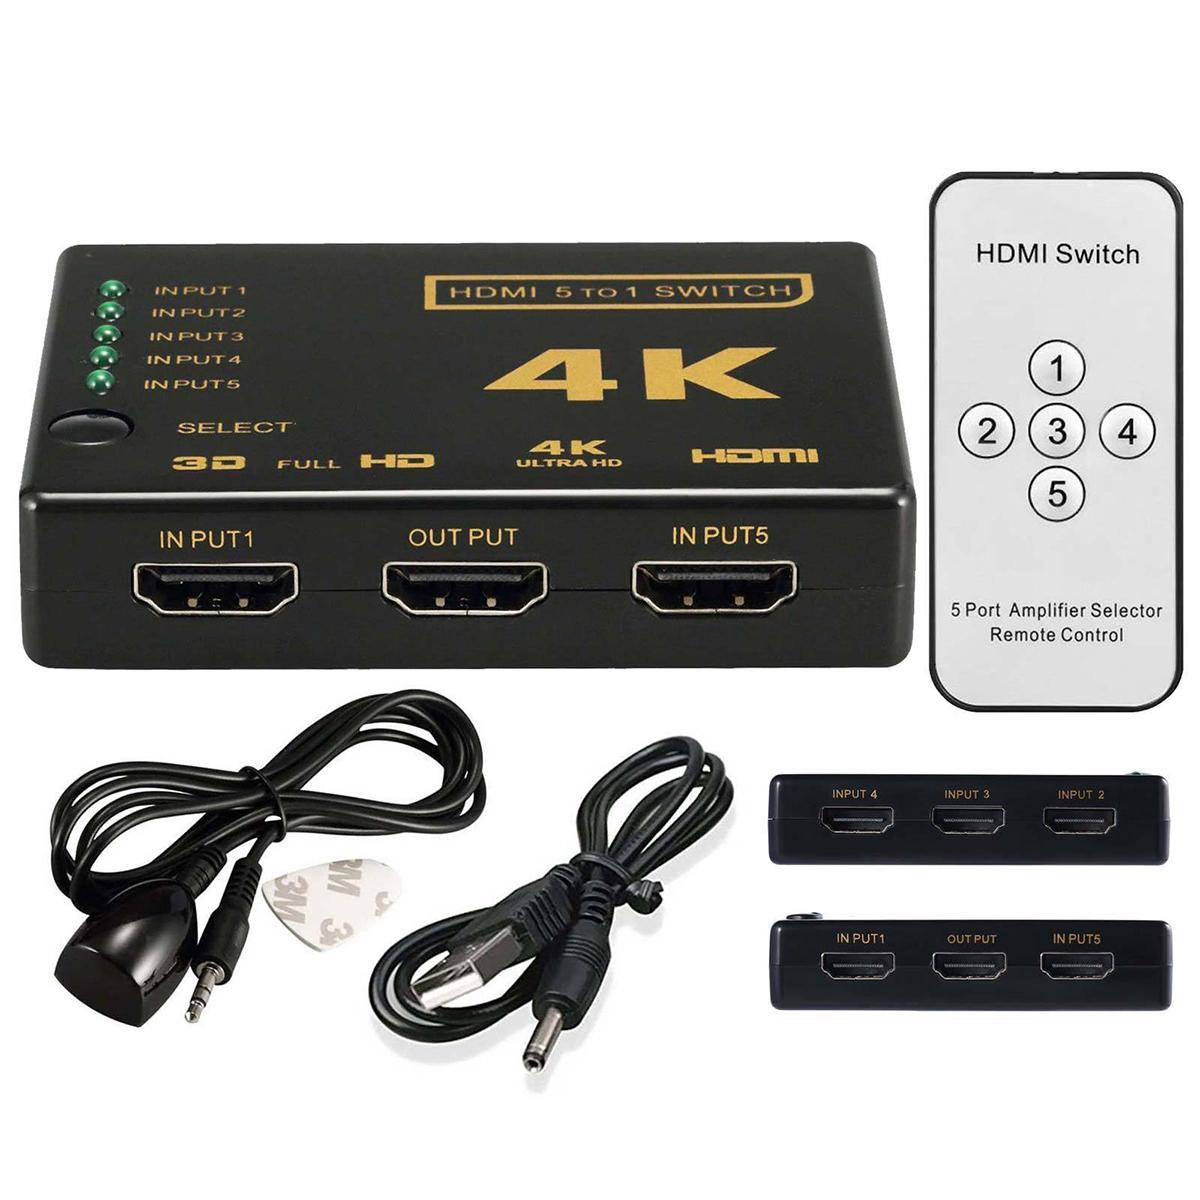 HDMI Splitter Switch Box Ultra HD 5 Port 4K 3D 1080P IR Remote Control  Selector 5 in 1 Extender For HDTV 1080P Vedio